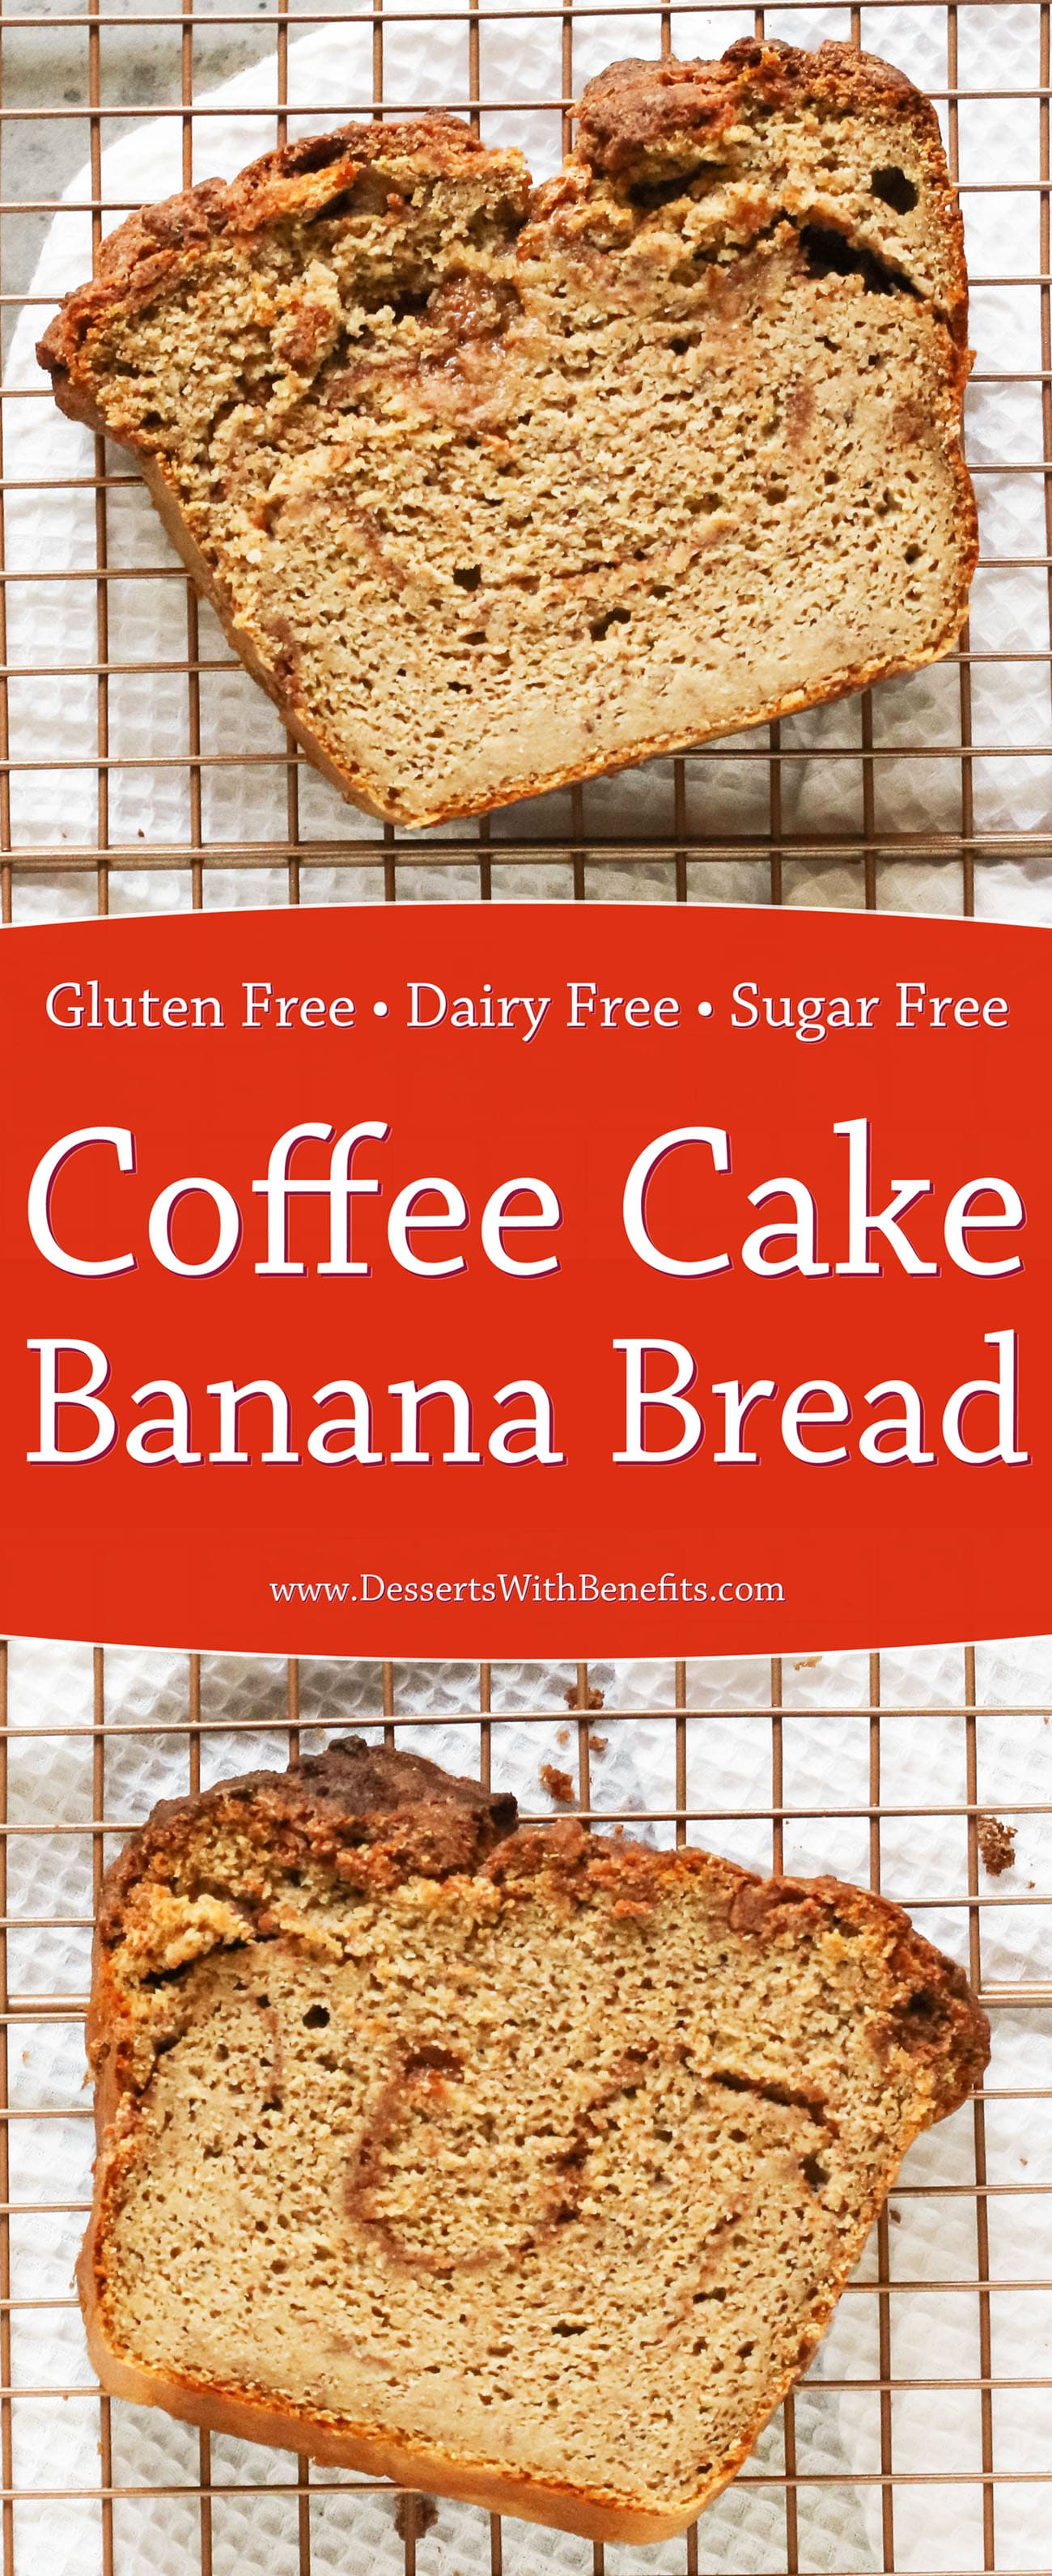 This super moist Coffee Cake Banana Bread is two classic breakfast treats mixed into one, and made healthy, high protein, high fiber, gluten free, dairy free, and sugar free too!